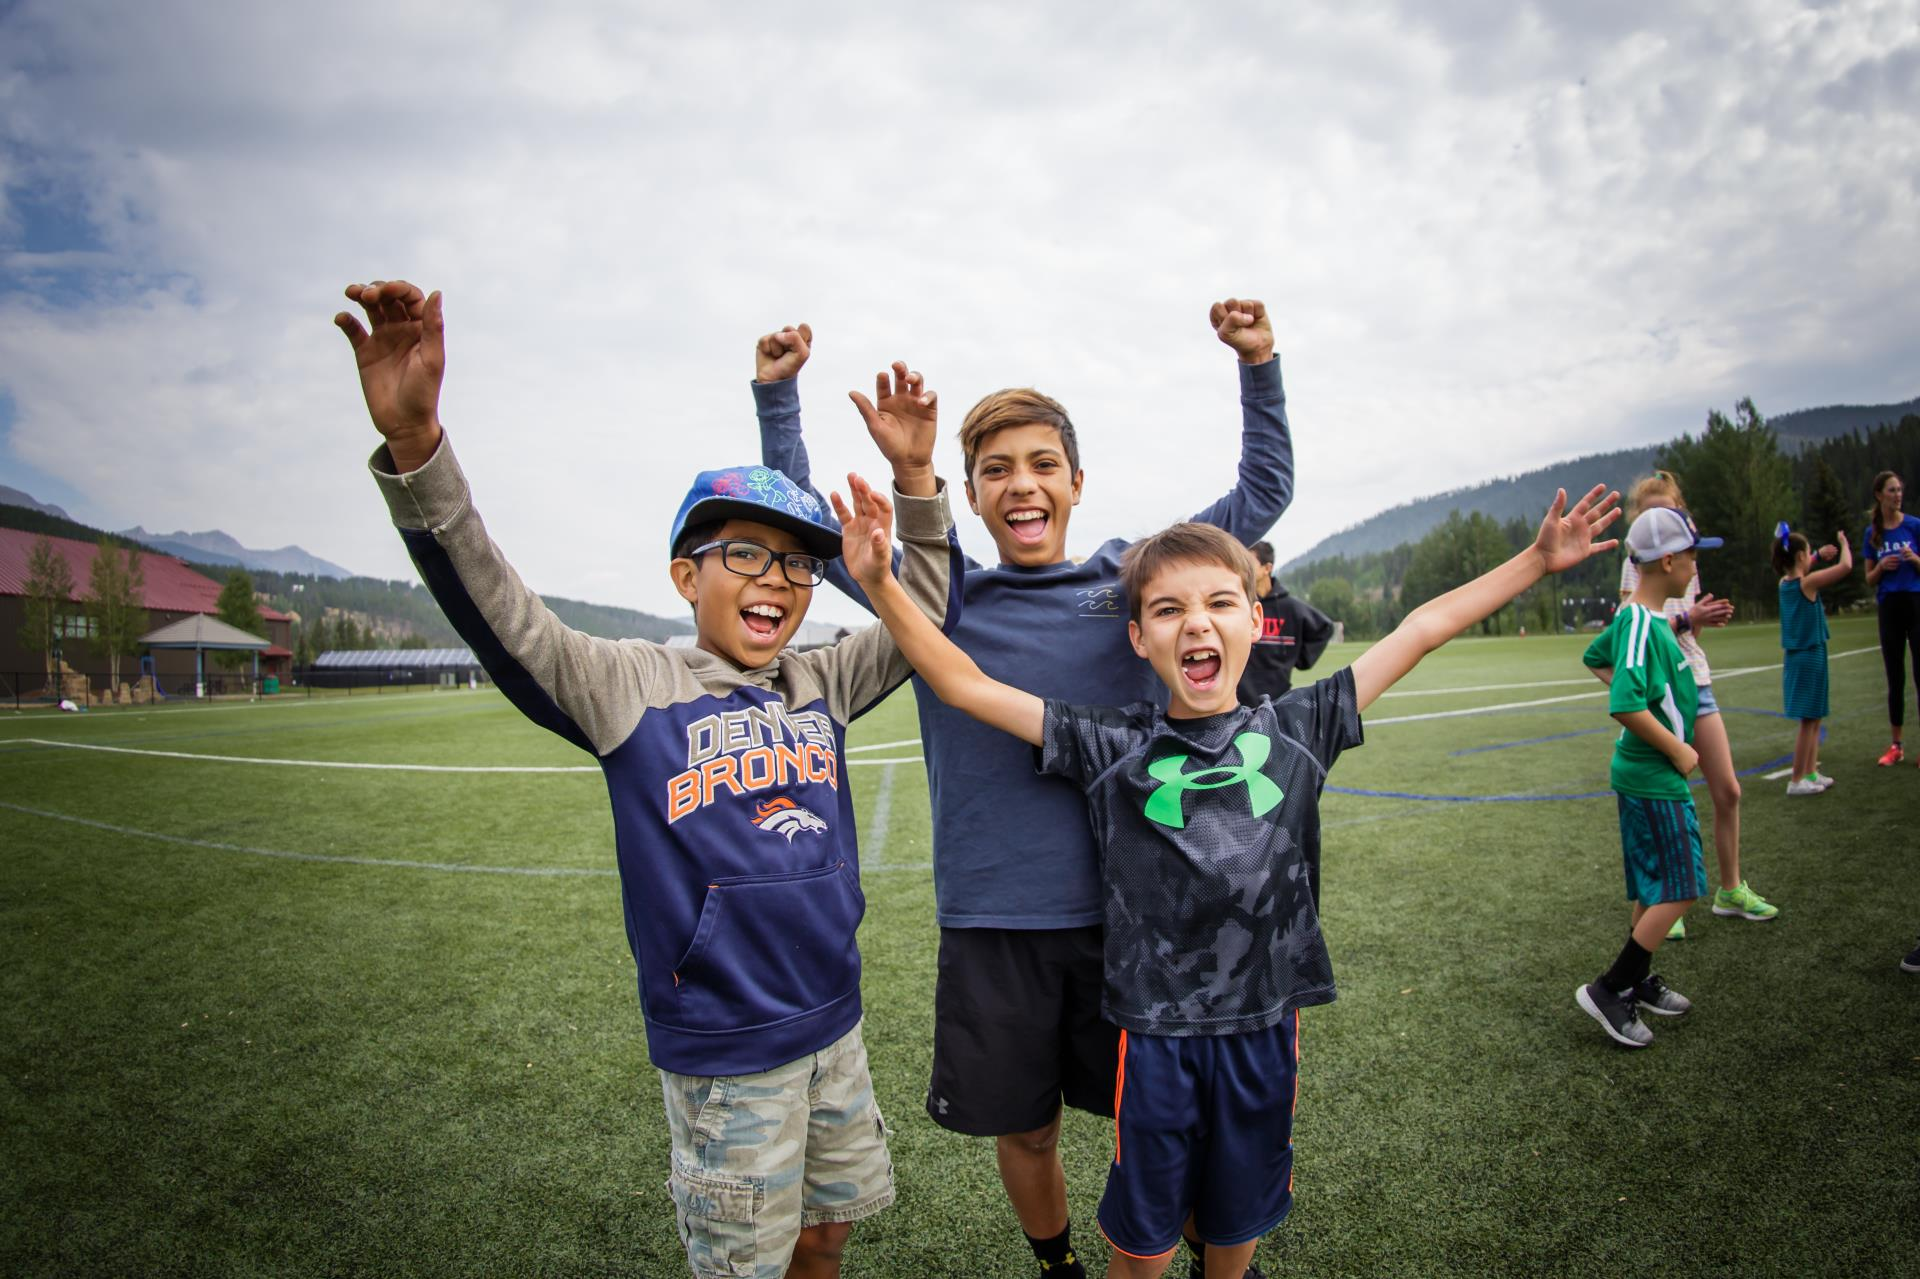 Three young boys outside on field with arms raised